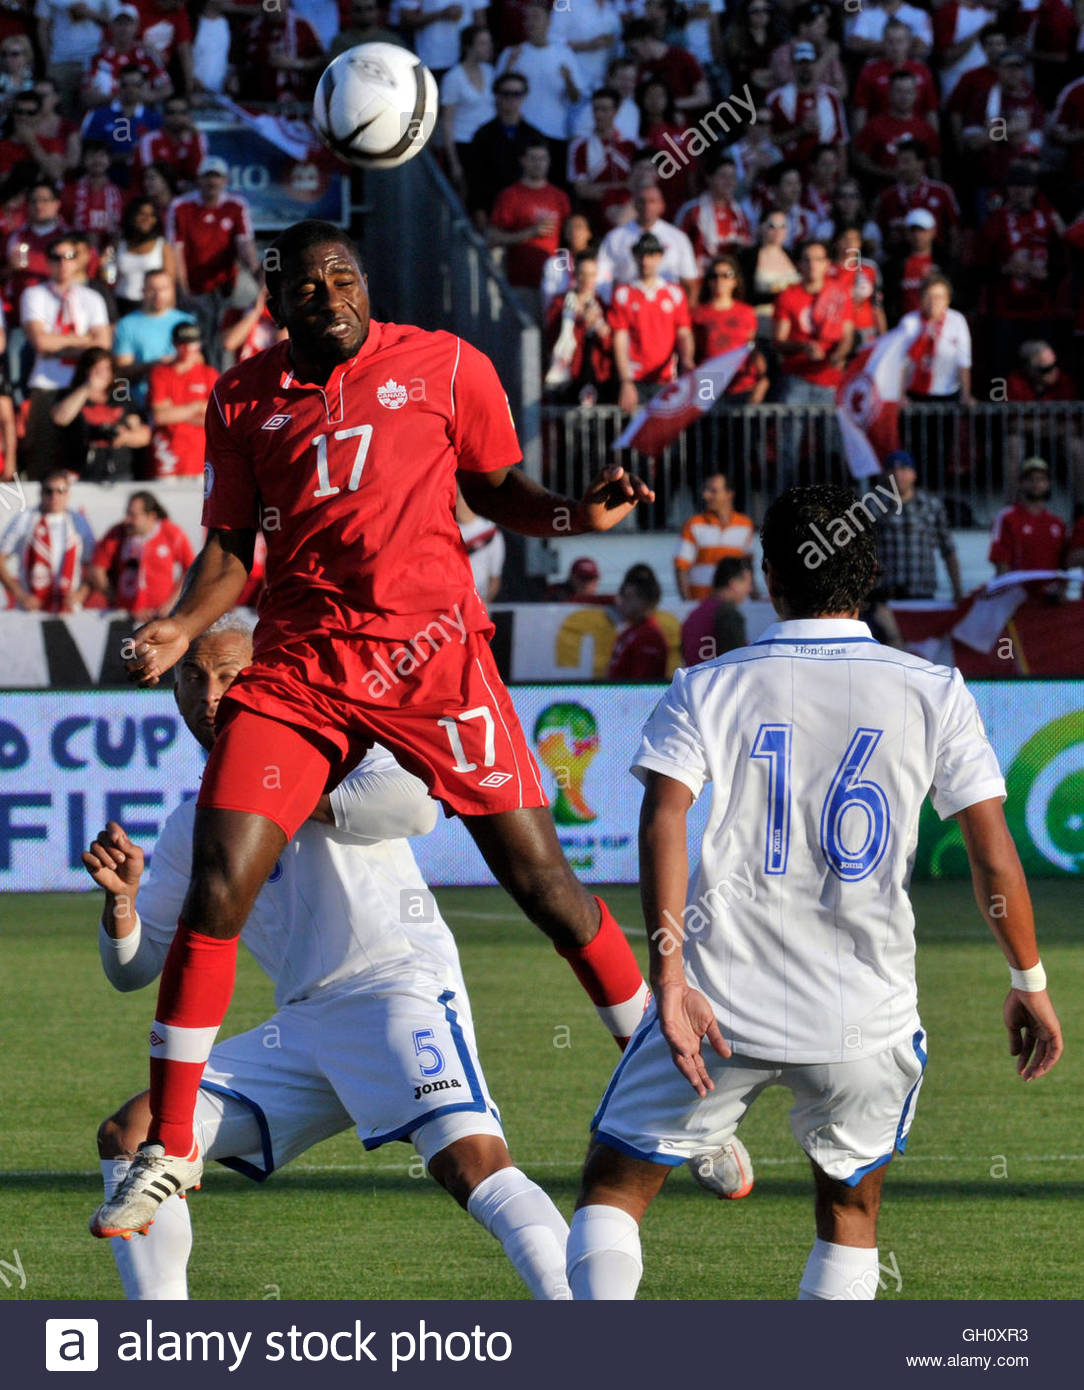 s olivier occean c heads the ball between s olivier occean c heads the ball between players victor bernandez and mauricio sabillon r during the first half of their world cup